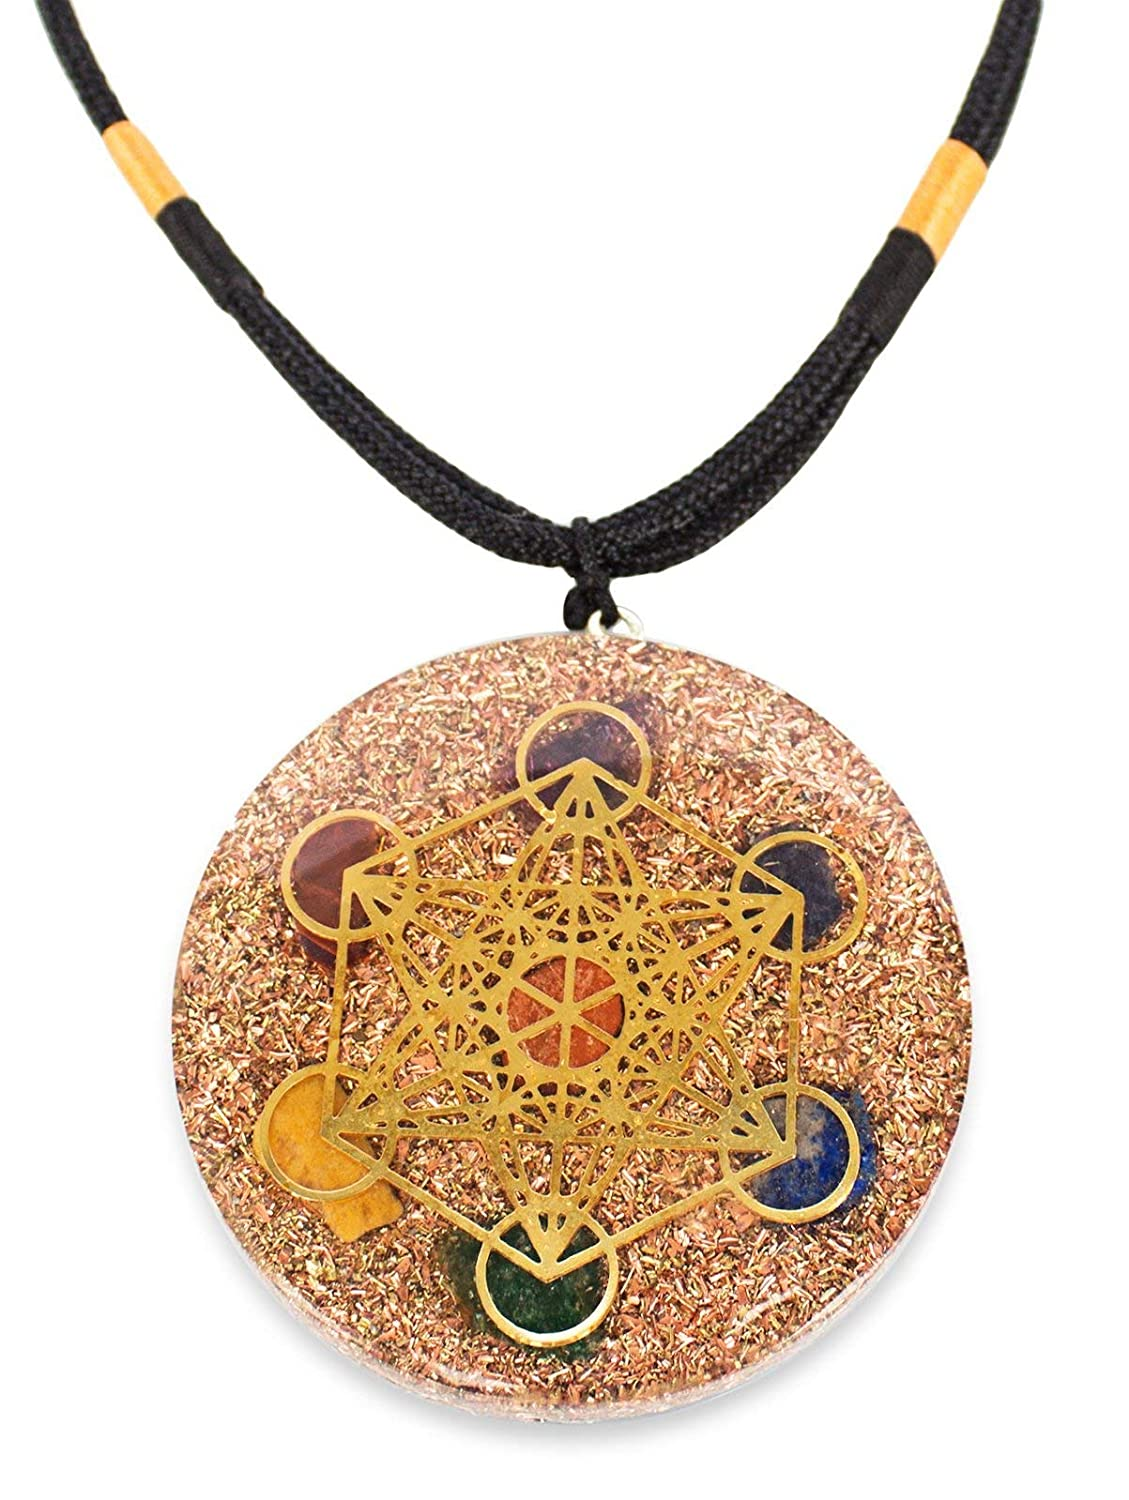 Reversible Orgonite Chakra Energy Web Merkaba 3 Chakra Orgone Pendant Generator – Revitalize Relax Chi-Lapis Lazuli, Carnelian Crystal necklace- Brass and Copper Tesla Coil Embedded